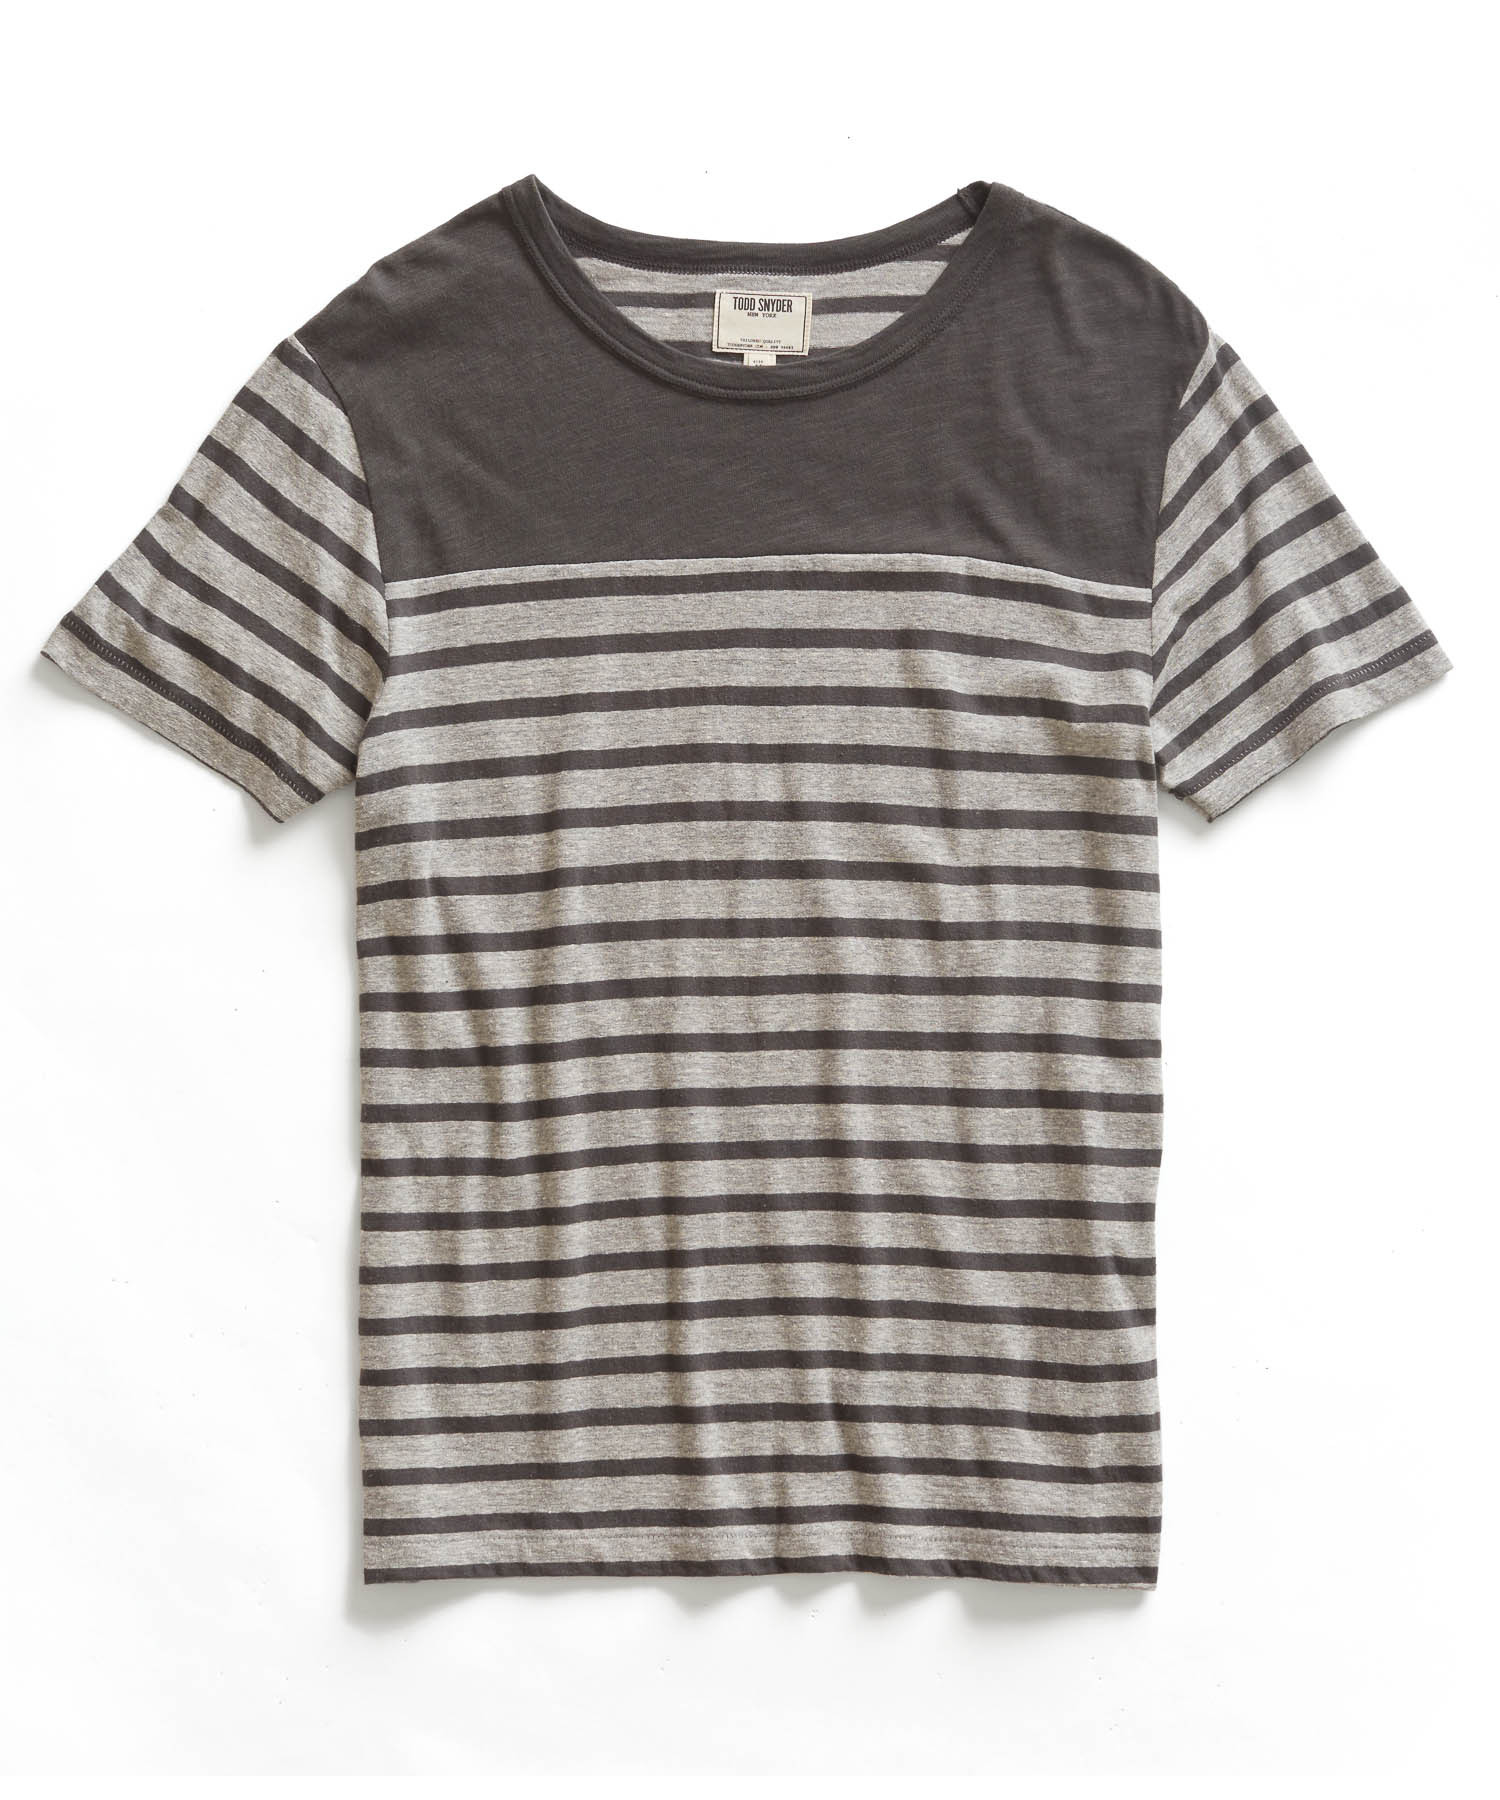 Todd snyder grey striped crew neck t shirt in gray for men Grey striped t shirt